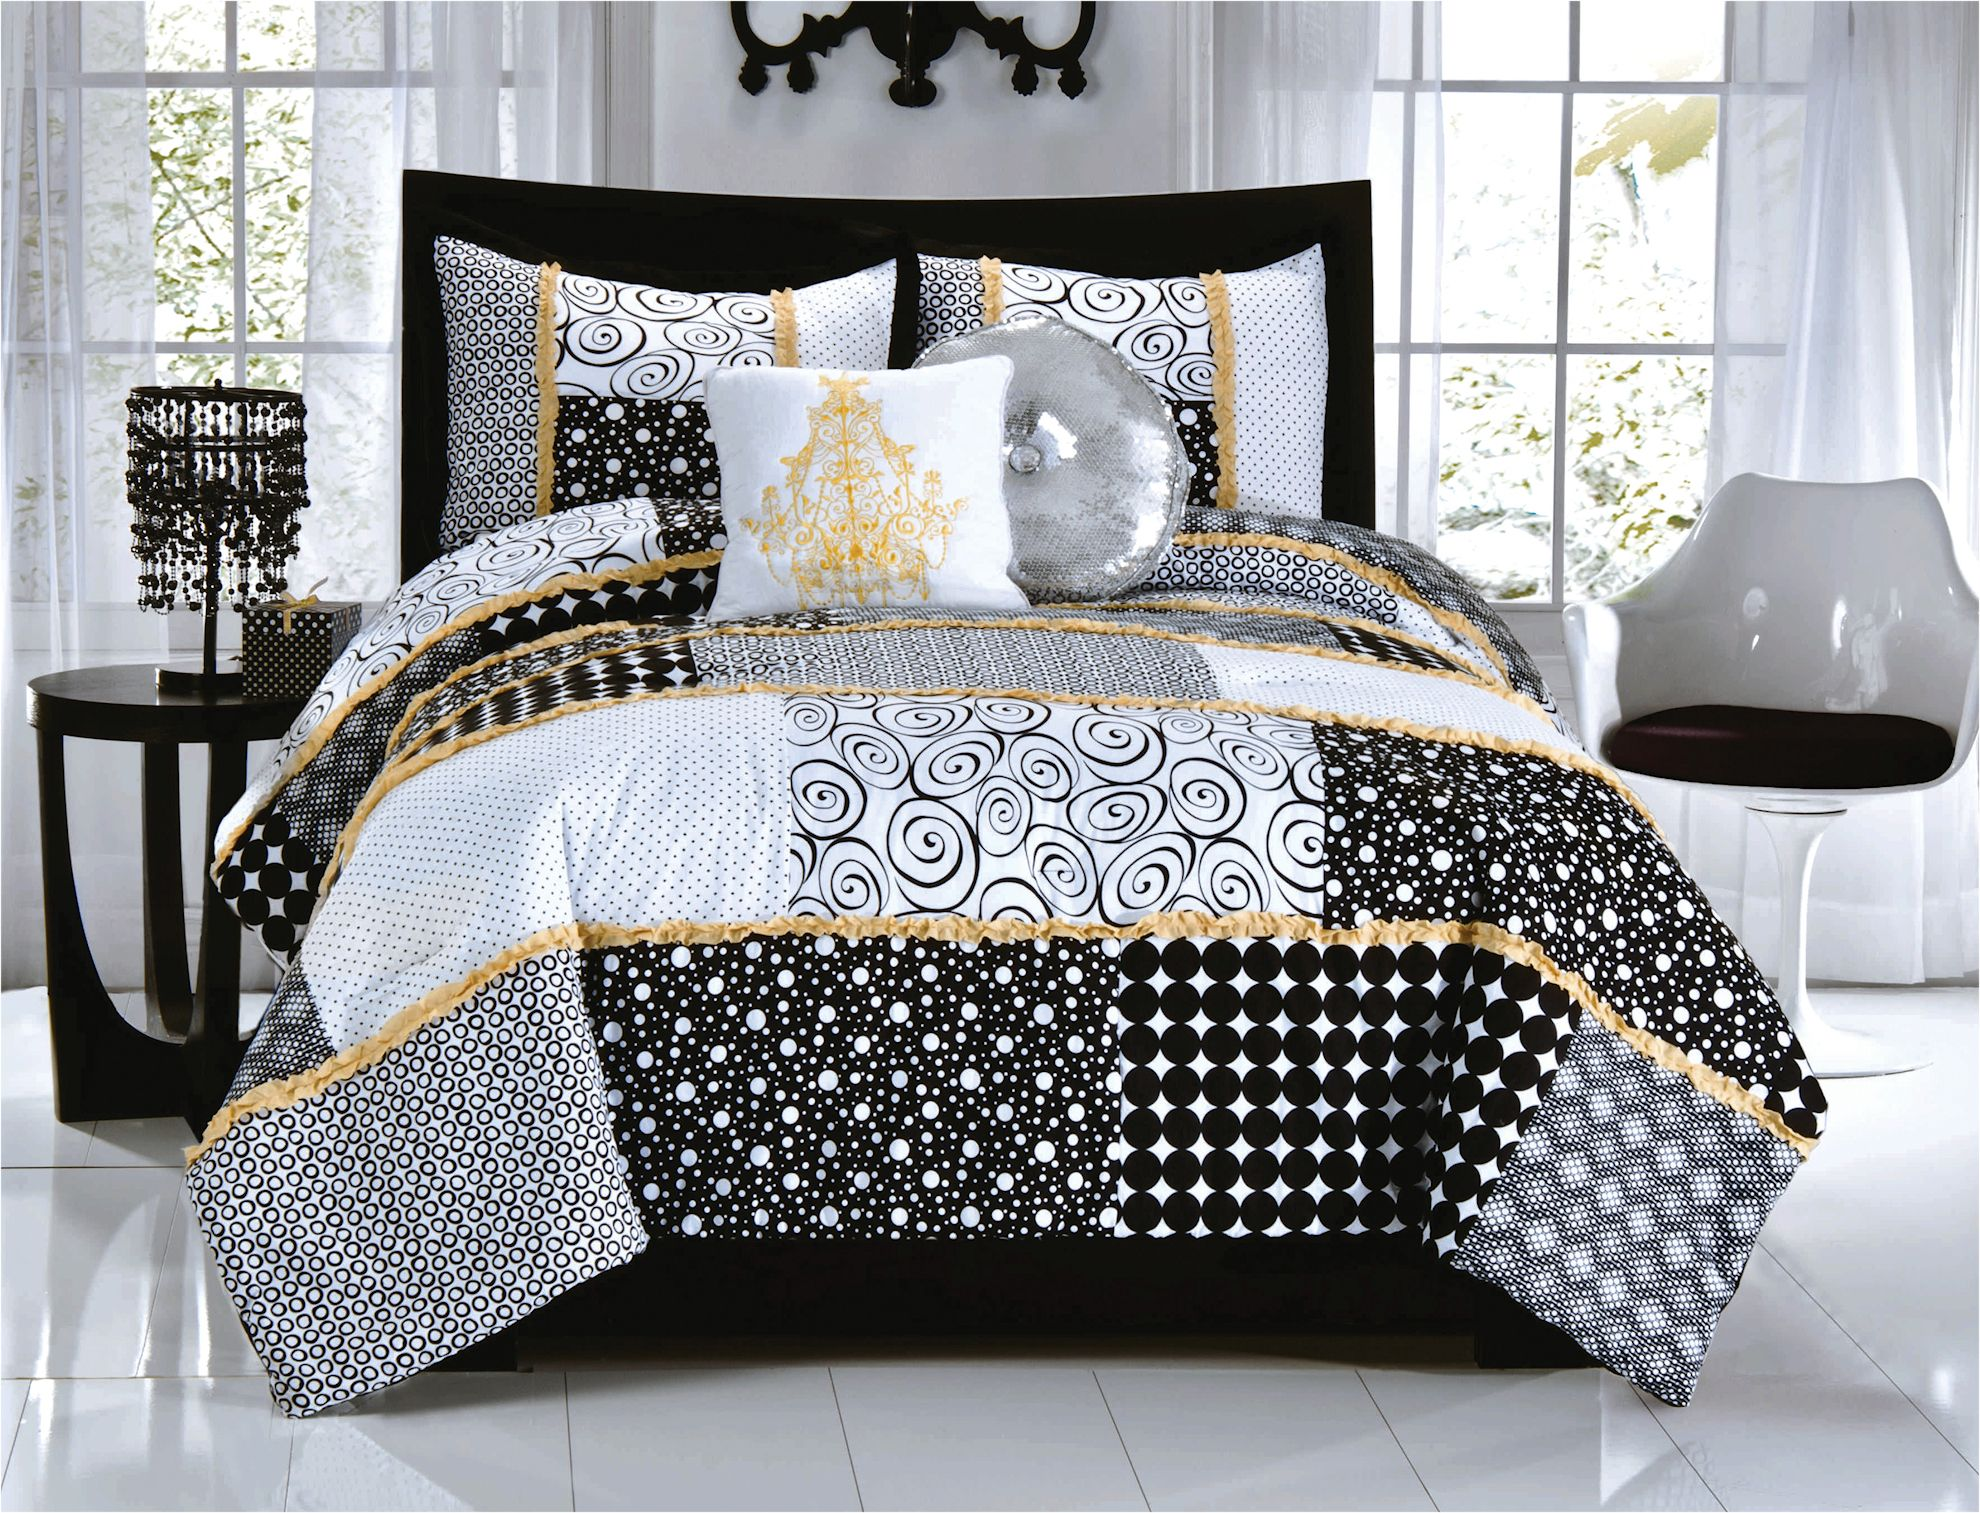 black comforters fullxfull chevron and listing purple zoom white comforter bedding il mxjs